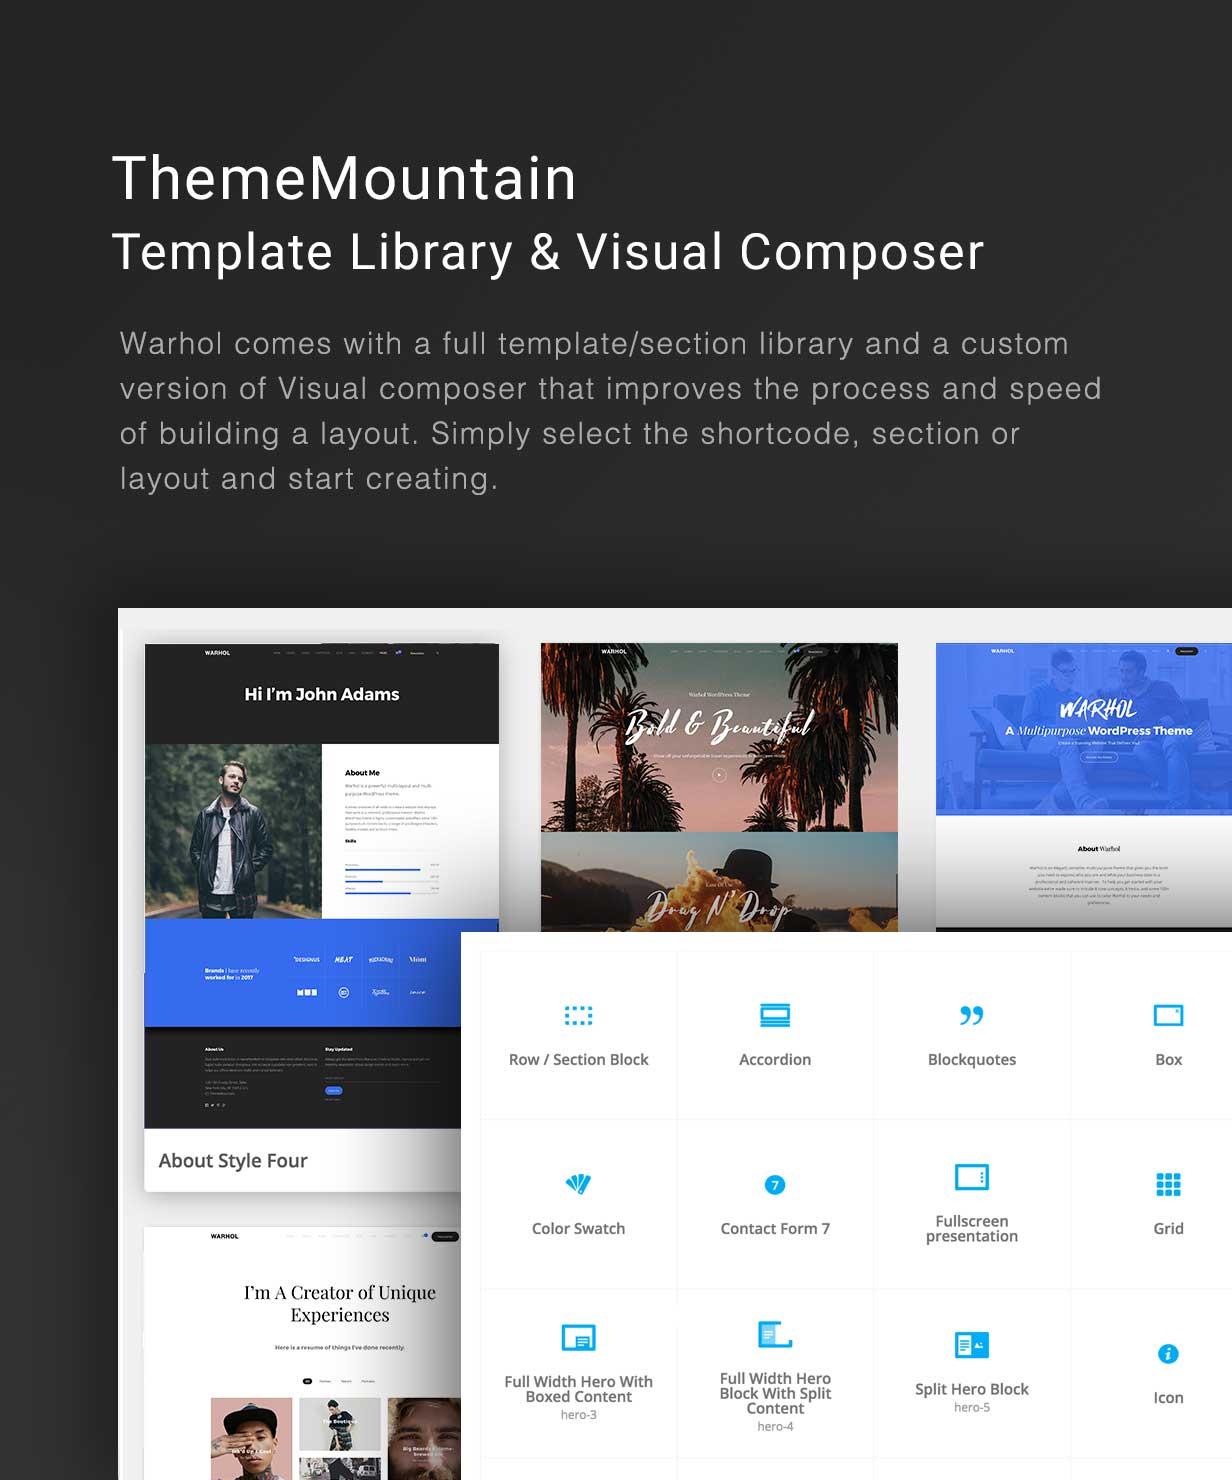 tf-profile-visual-composer.jpg?version=1 Warhol - Responsive Multipurpose WordPress Theme for Creatives theme WordPress